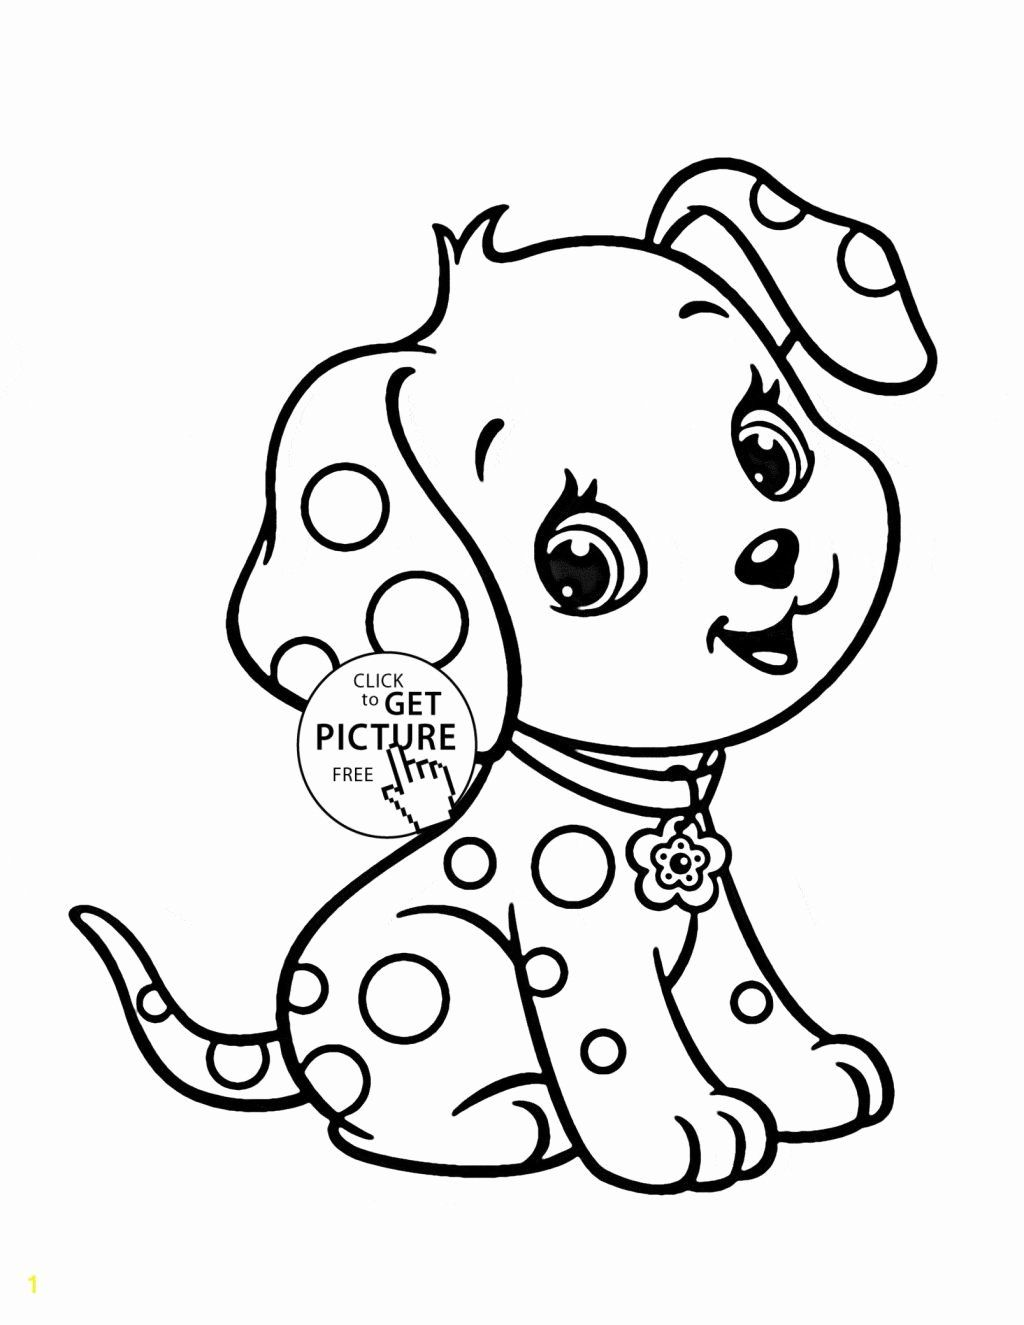 Little Girl Coloring Pages Printable Lovely Coloring Book Baby Animalng Pages Cute Animals In 2020 Animal Coloring Pages Puppy Coloring Pages Valentine Coloring Pages